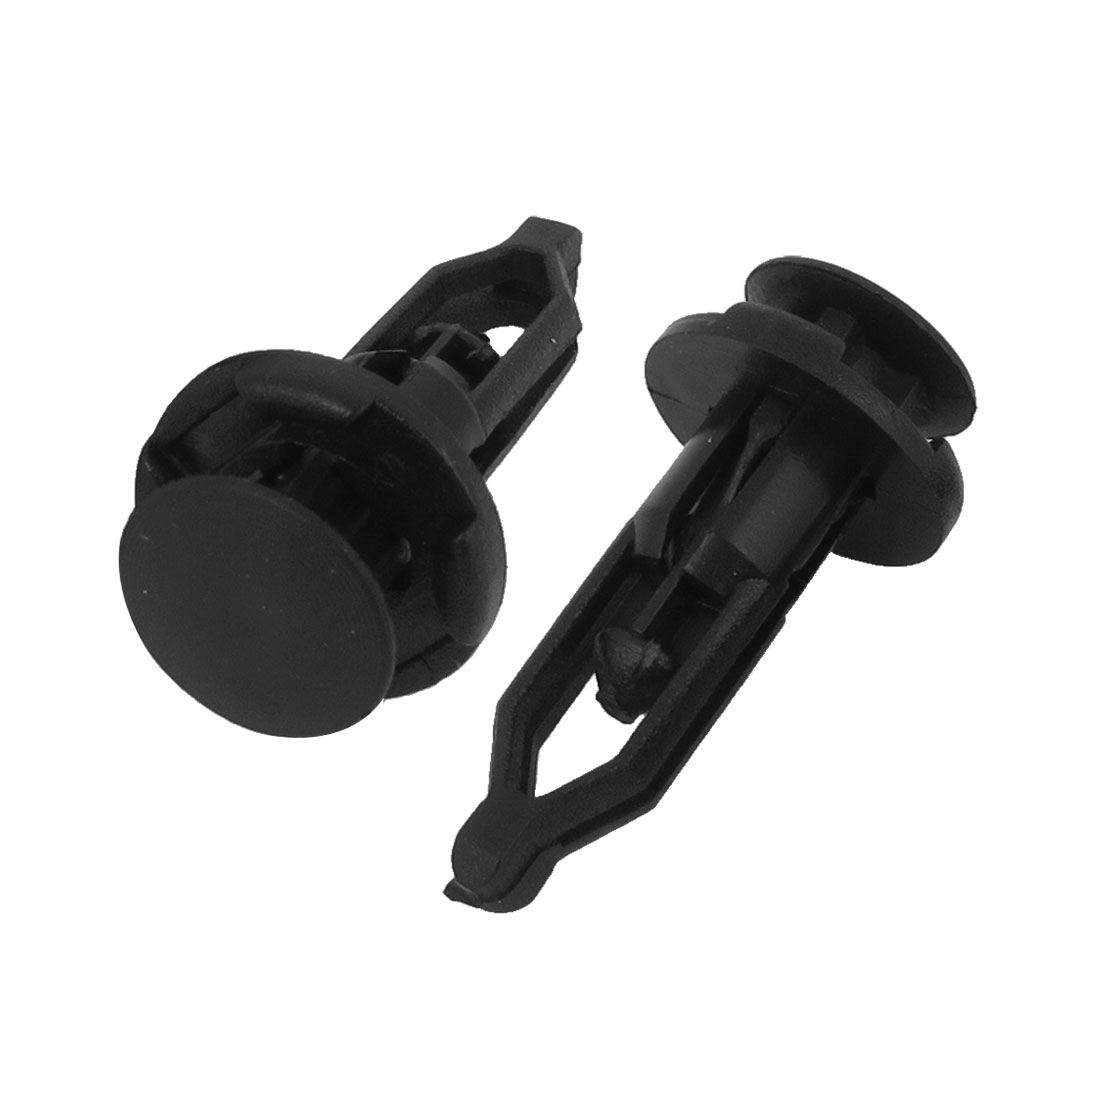 100 x 6mm Hole Plastic Rivets Fastener Push Clips Black for Car Auto Fender